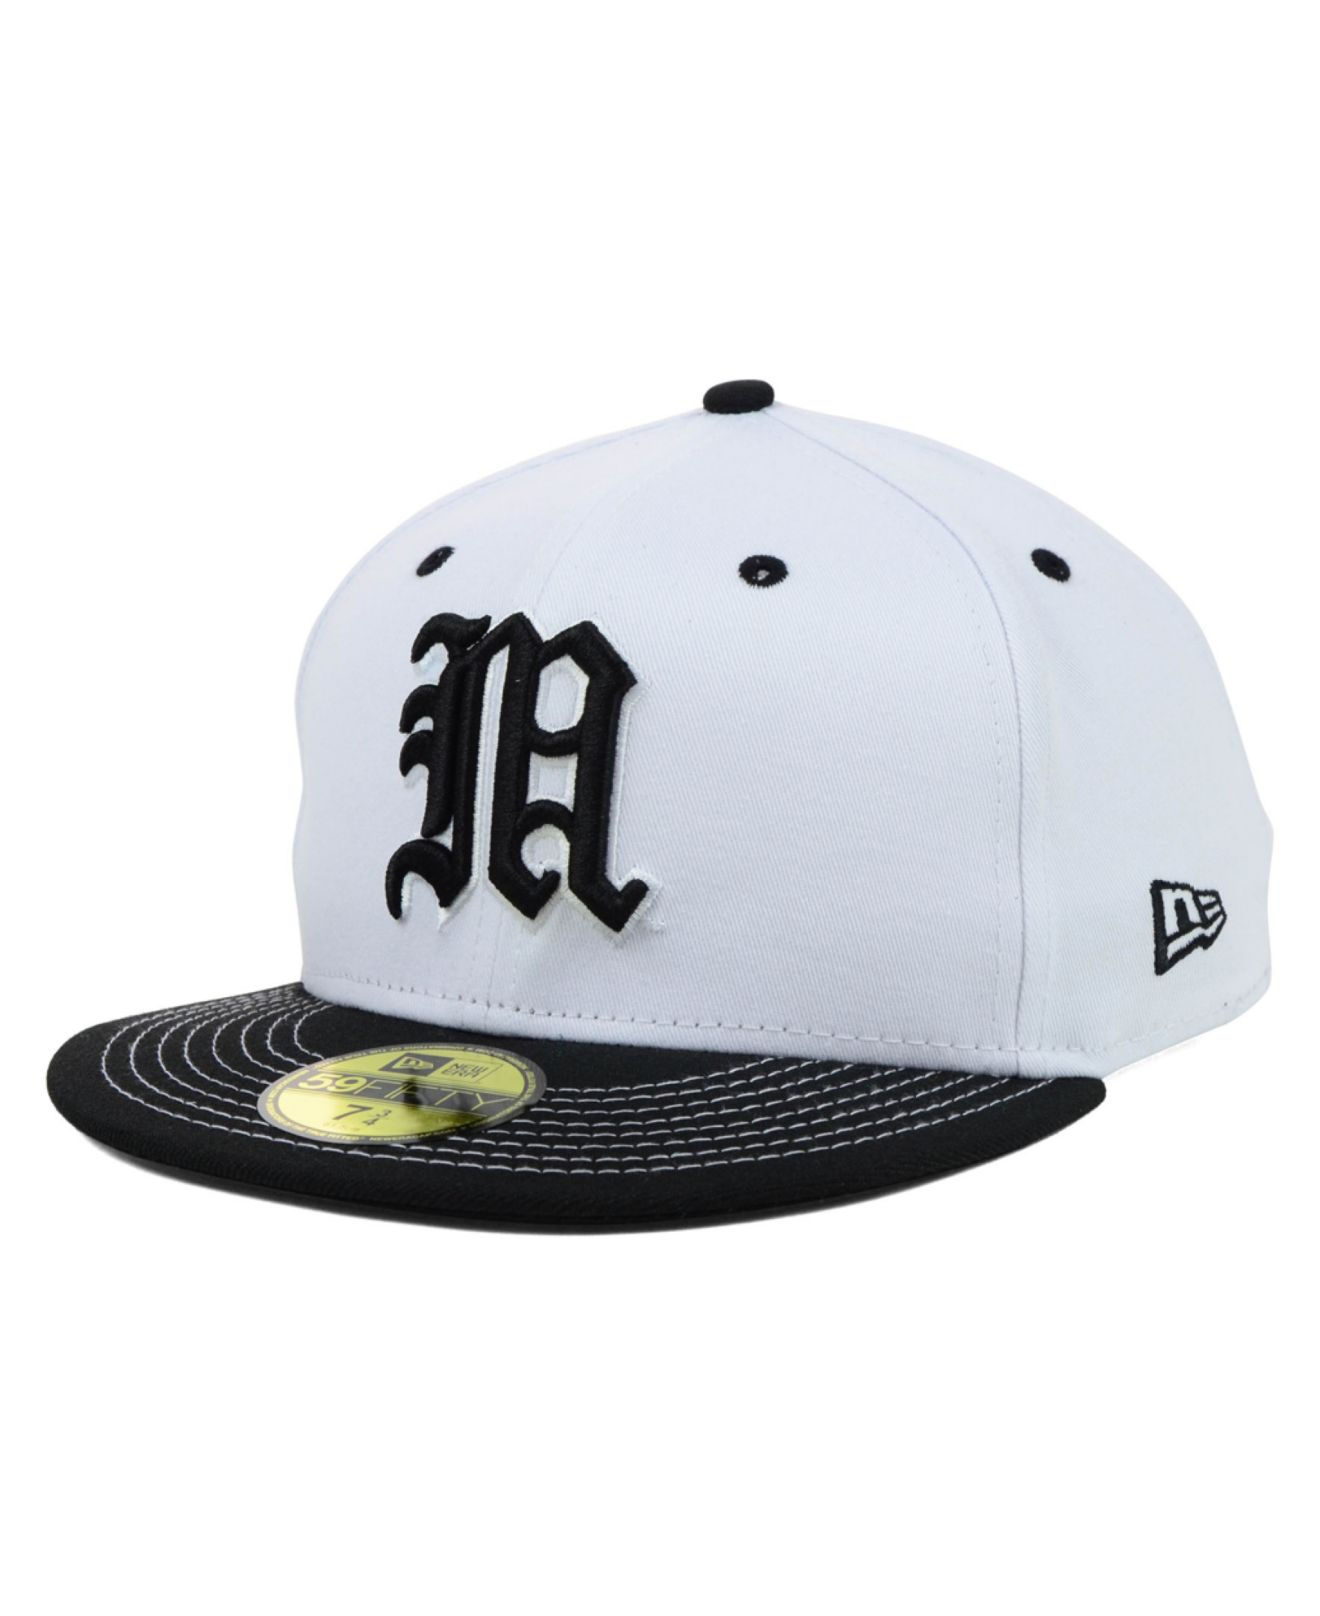 889aeadfc25 ... where to buy lyst ktz miami hurricanes ncaa white black 59fifty cap in  black 884d1 db288